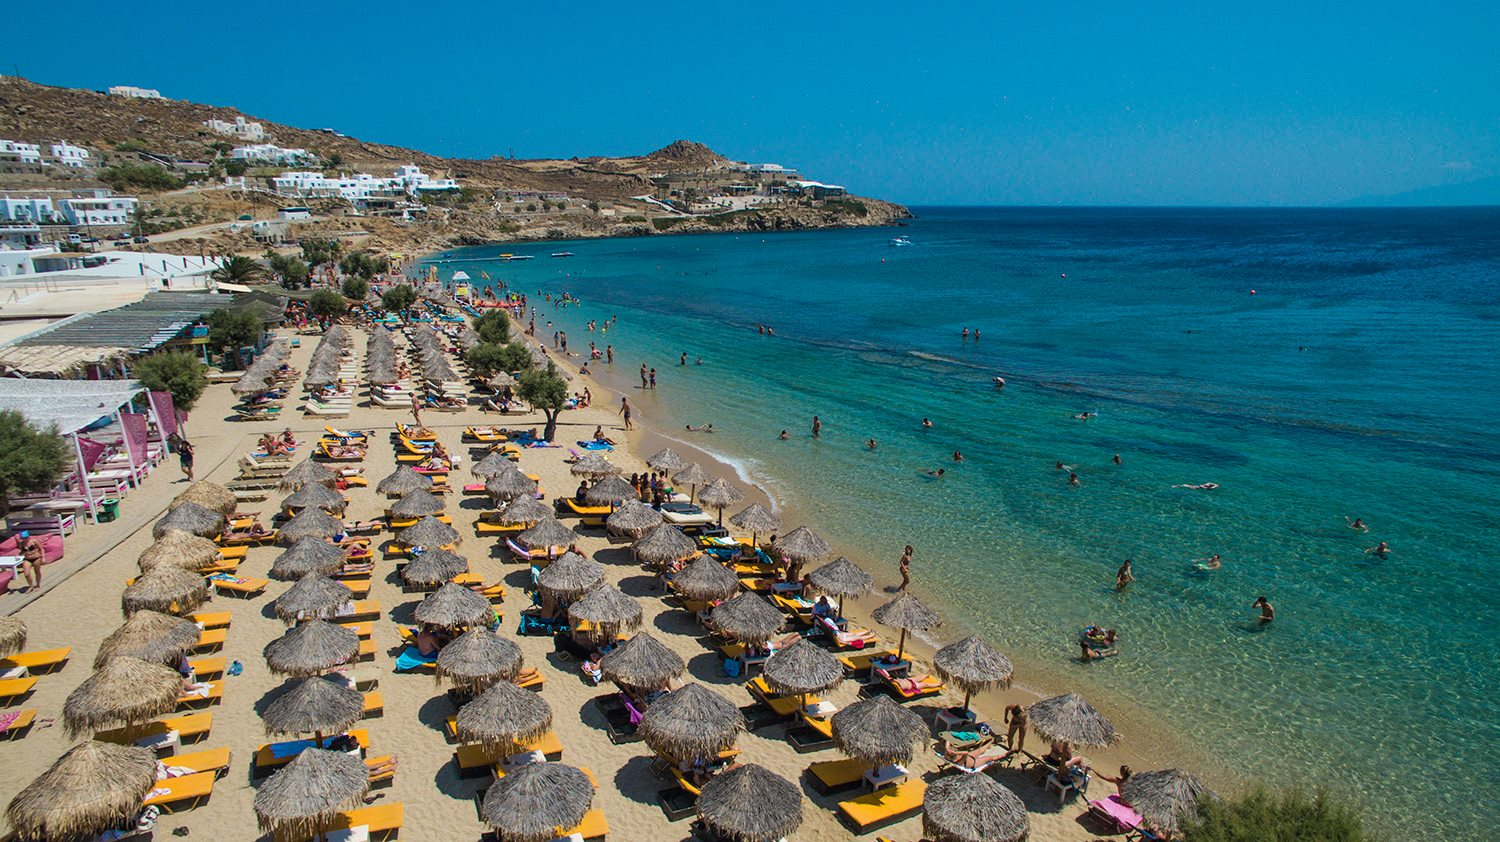 Best Island Beaches For Partying Mykonos St Barts: Paradise Beach In Mykonos Island, Greece